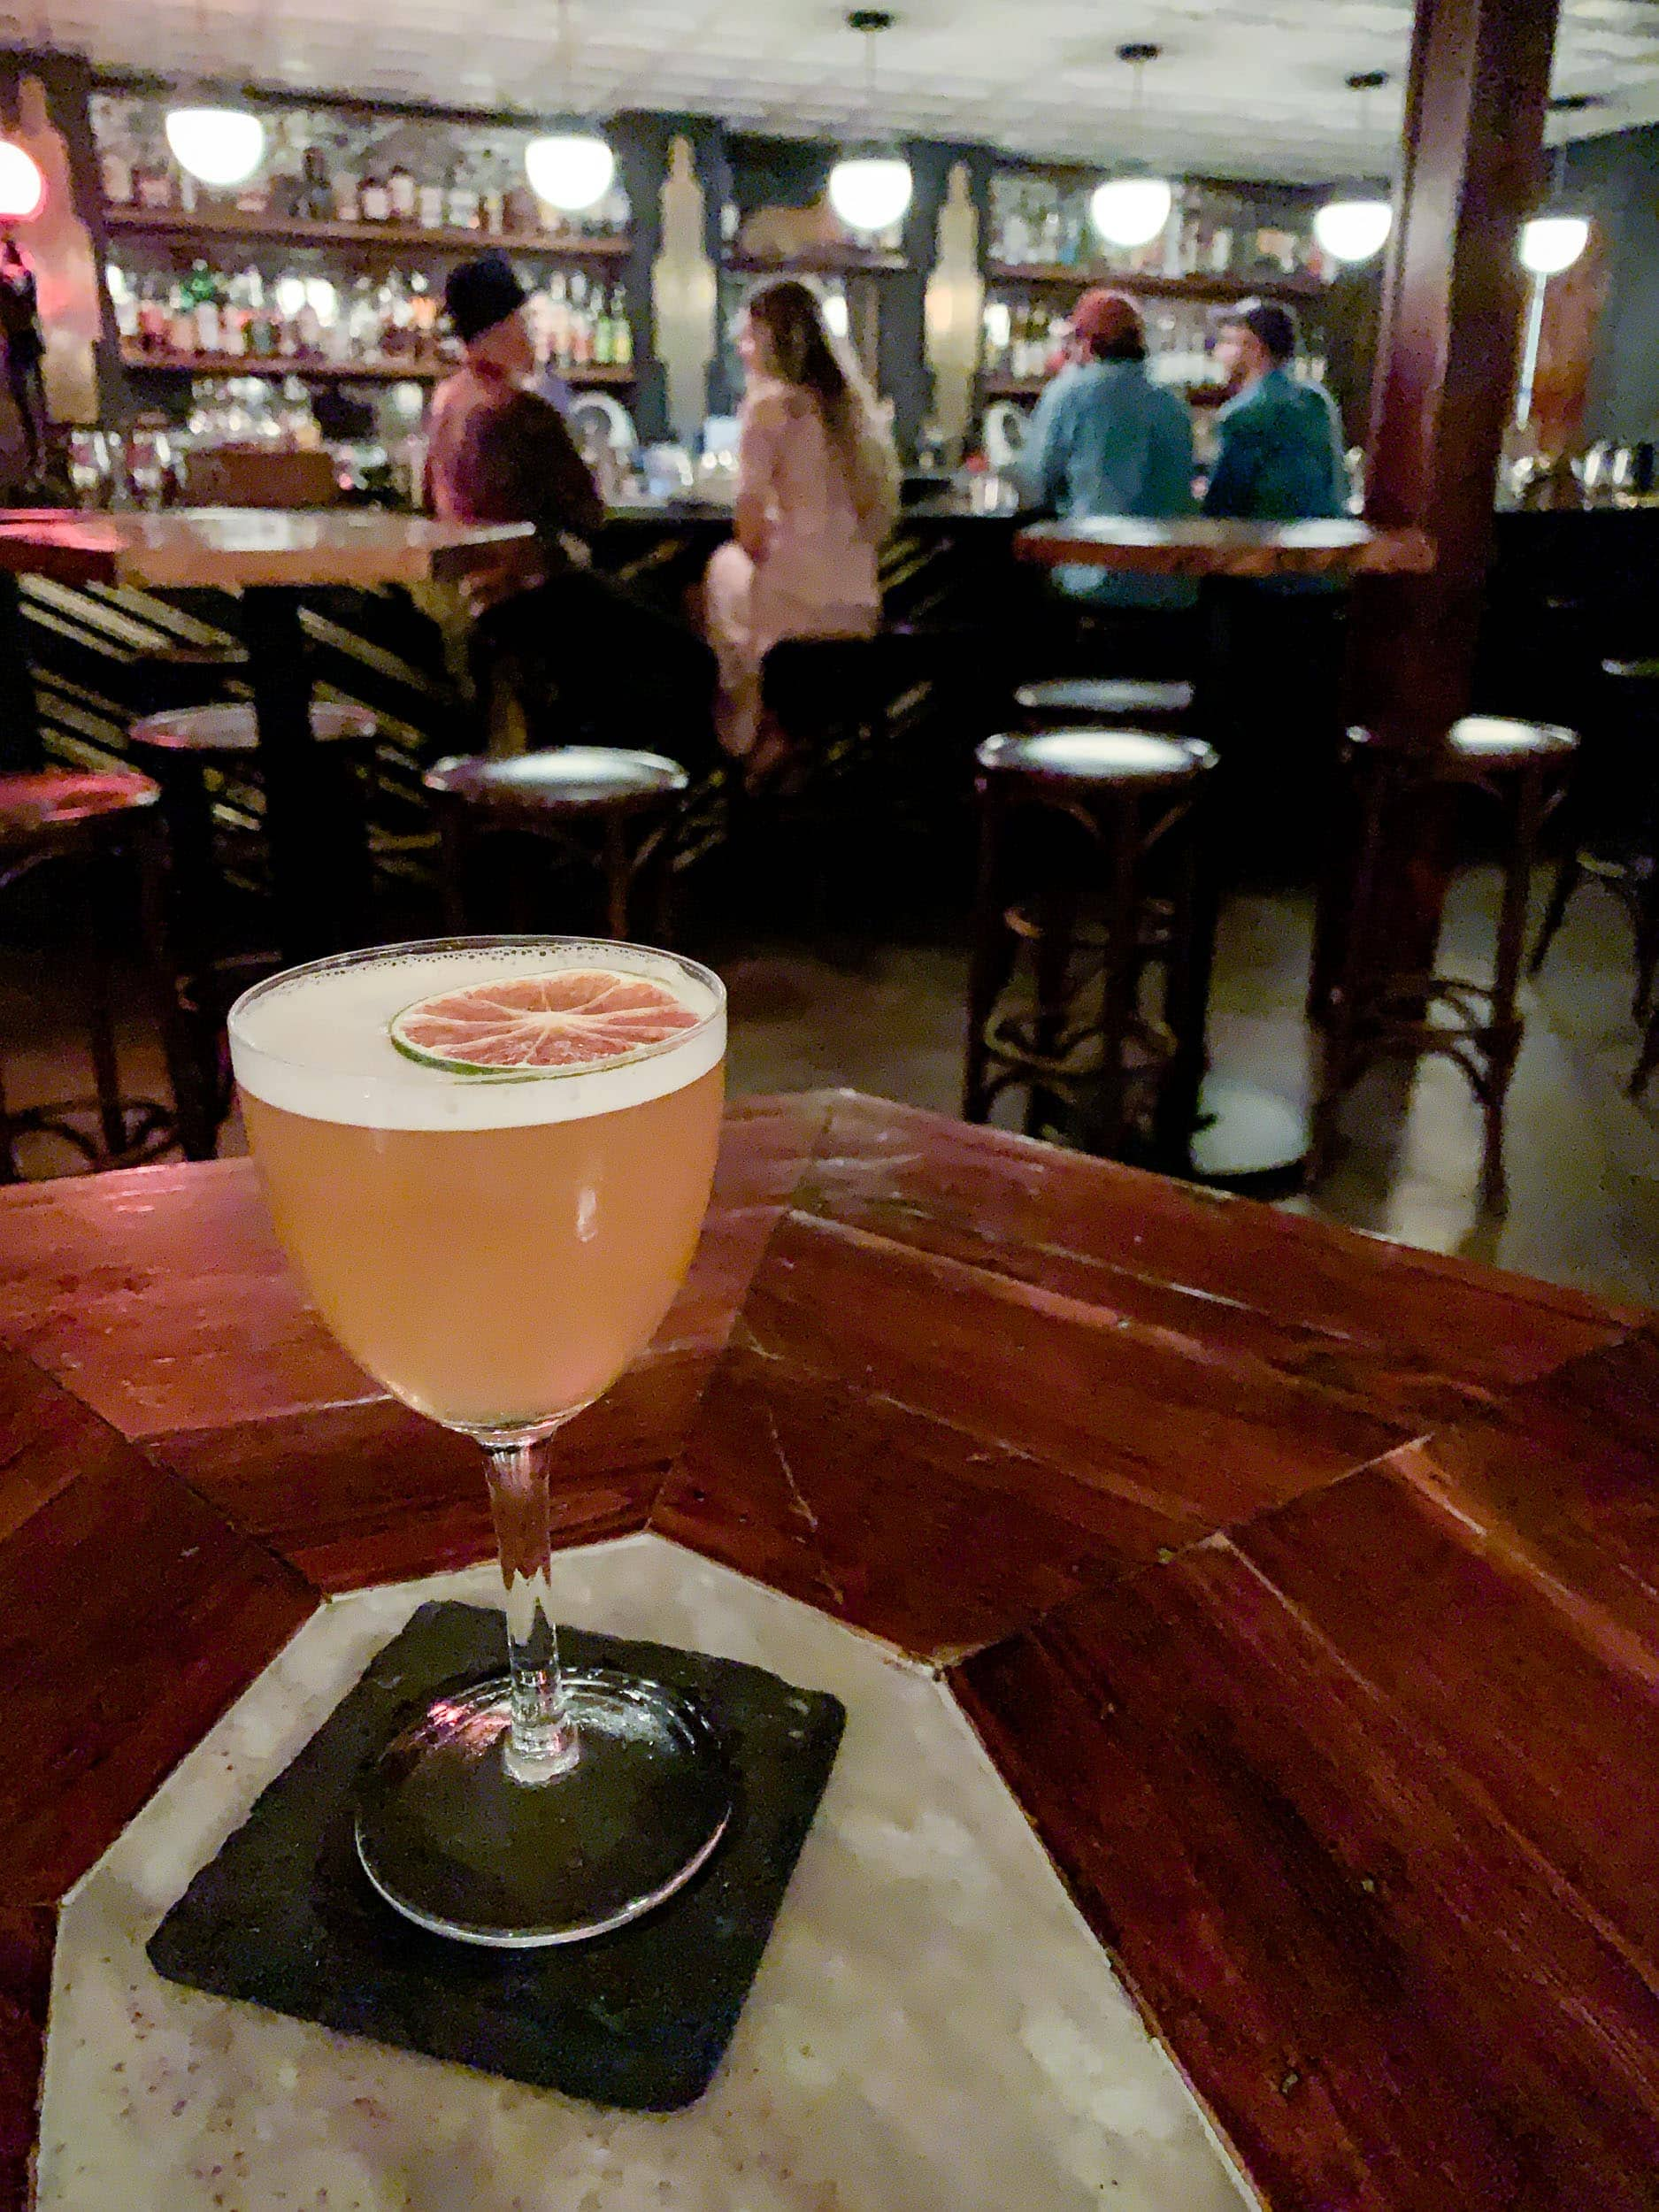 Fox daquiri with Appleton Reserve, Rhum Clement, El Dorado 5 Rums, lime stock, pineapple skins, sea salt, sugar, and lime oil